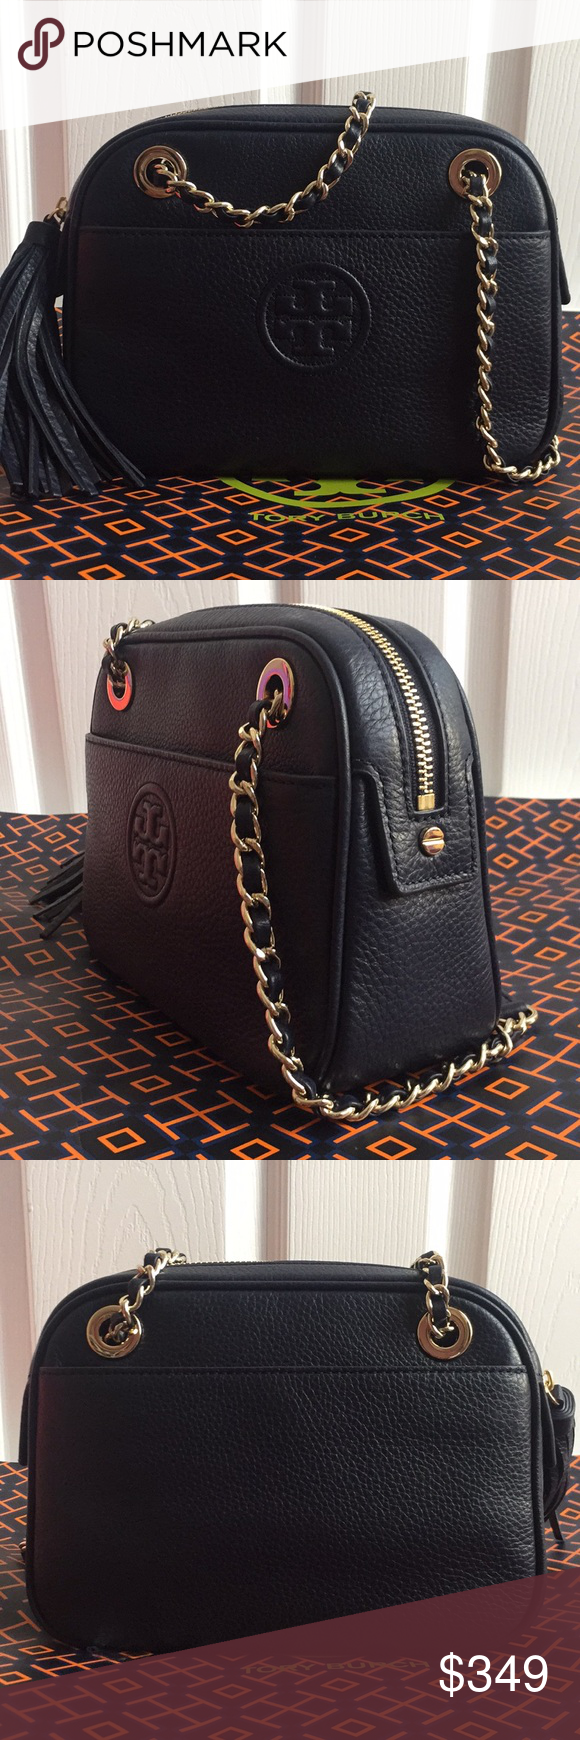 Tory Burch Bombe Crossbody W. Chain Bag This is an original Tory Burch  handbag and as described. It is brand new with tag attached. 114a9fc987